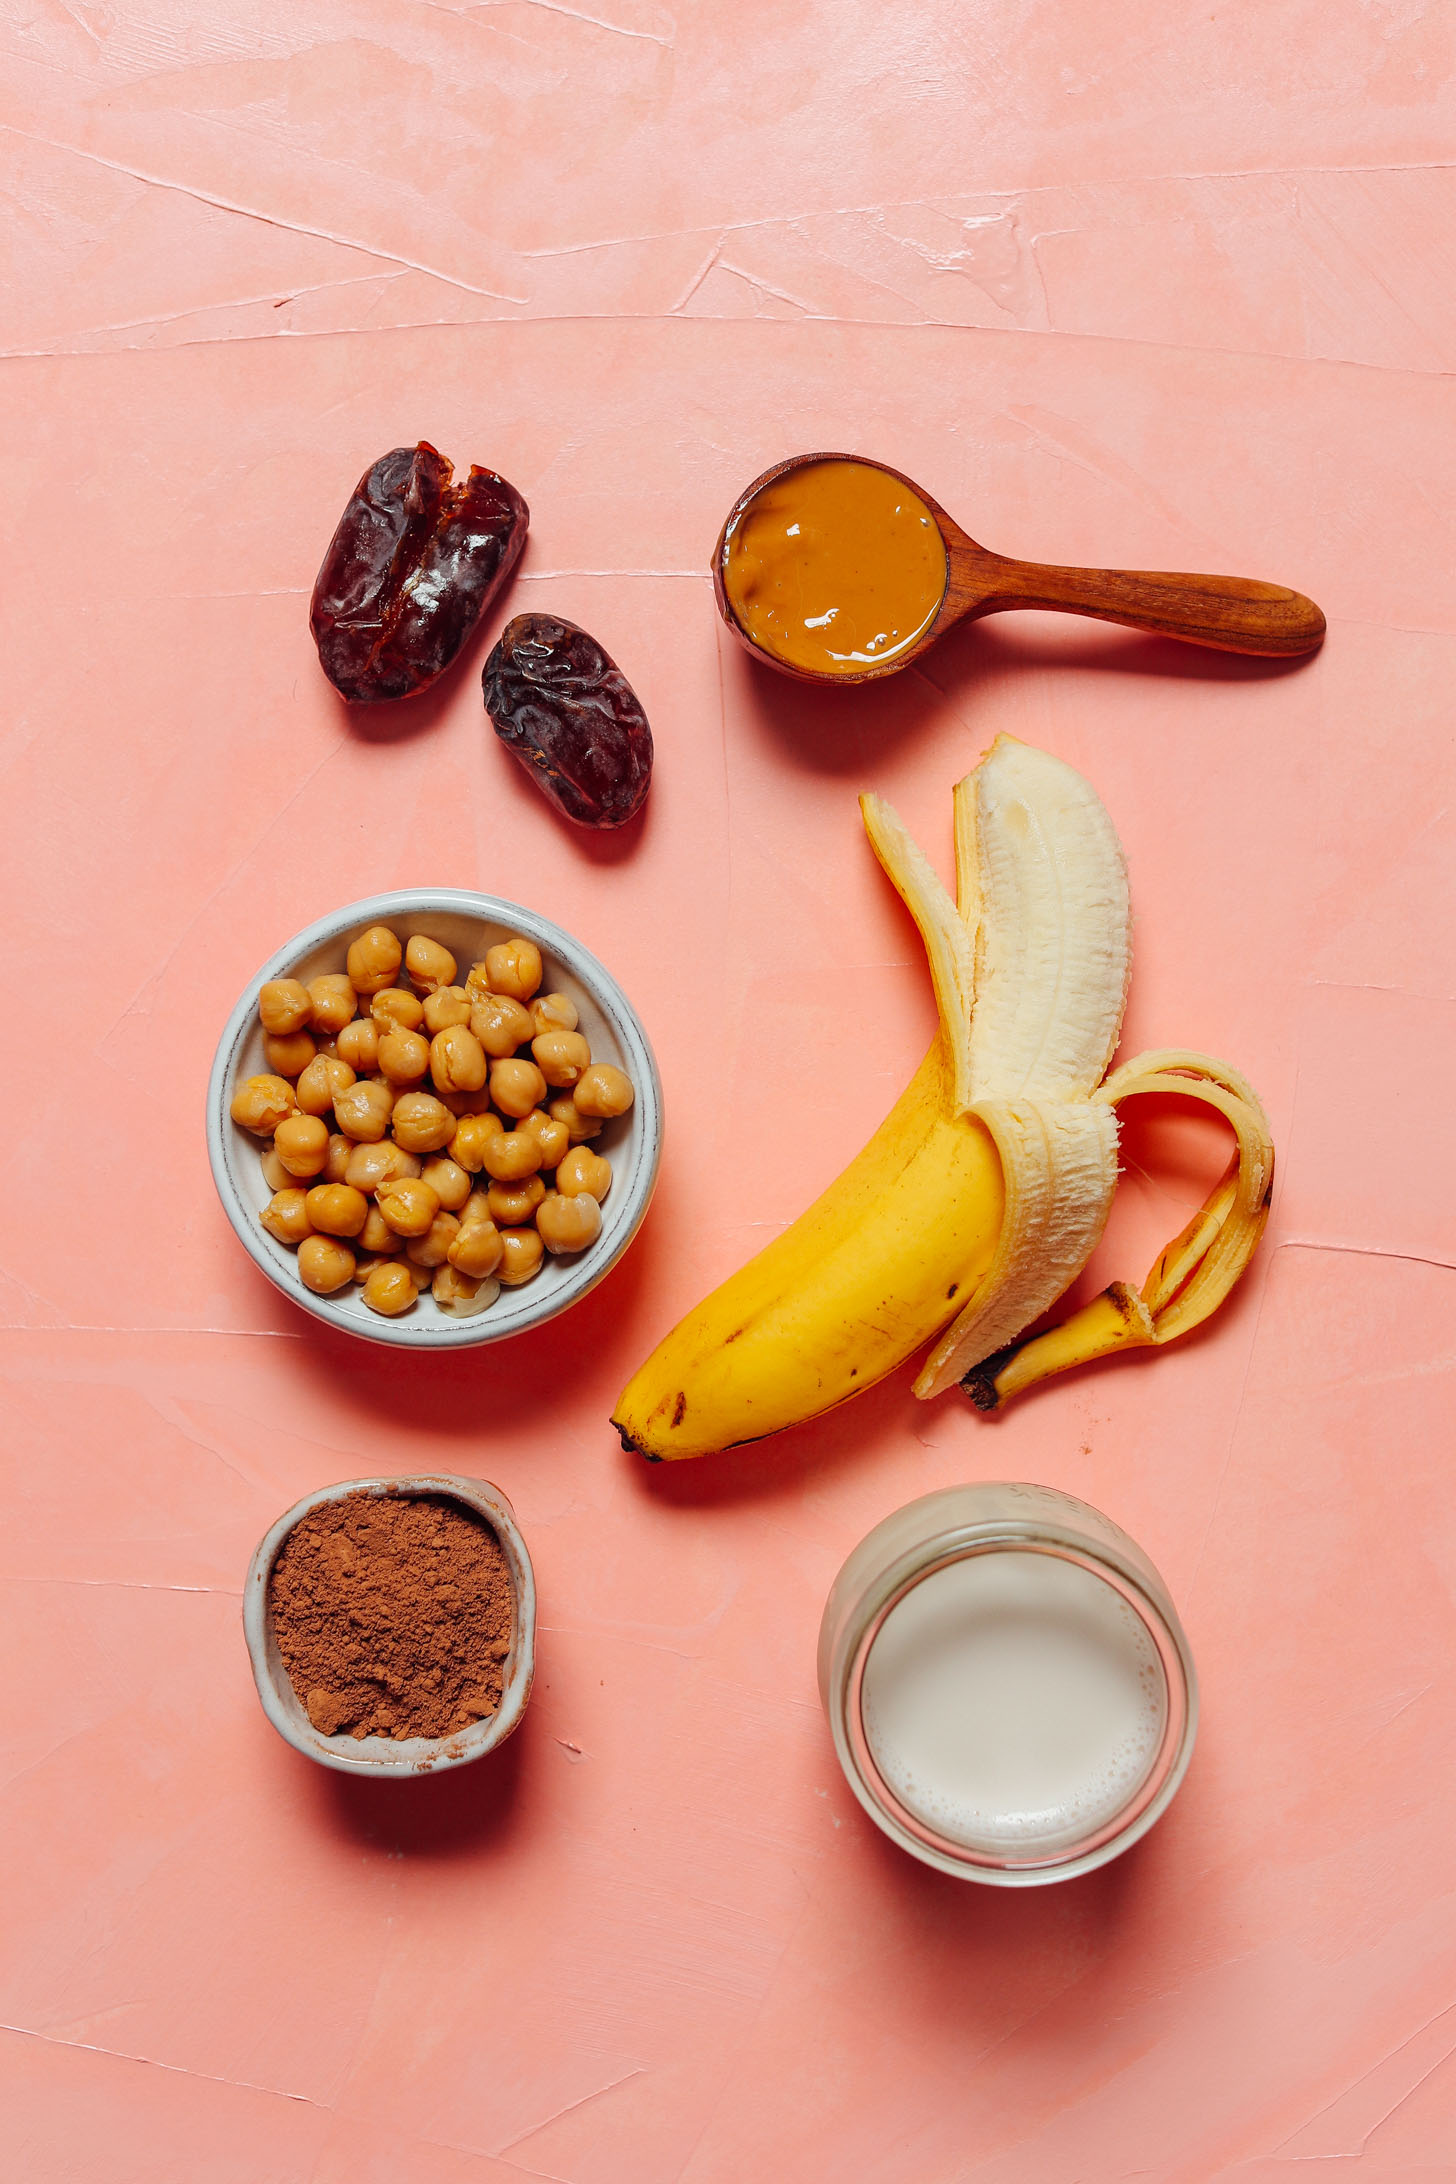 Bananas, chickpeas, dates, and other ingredients for making a Vegan Chocolate Chickpea Shake recipe